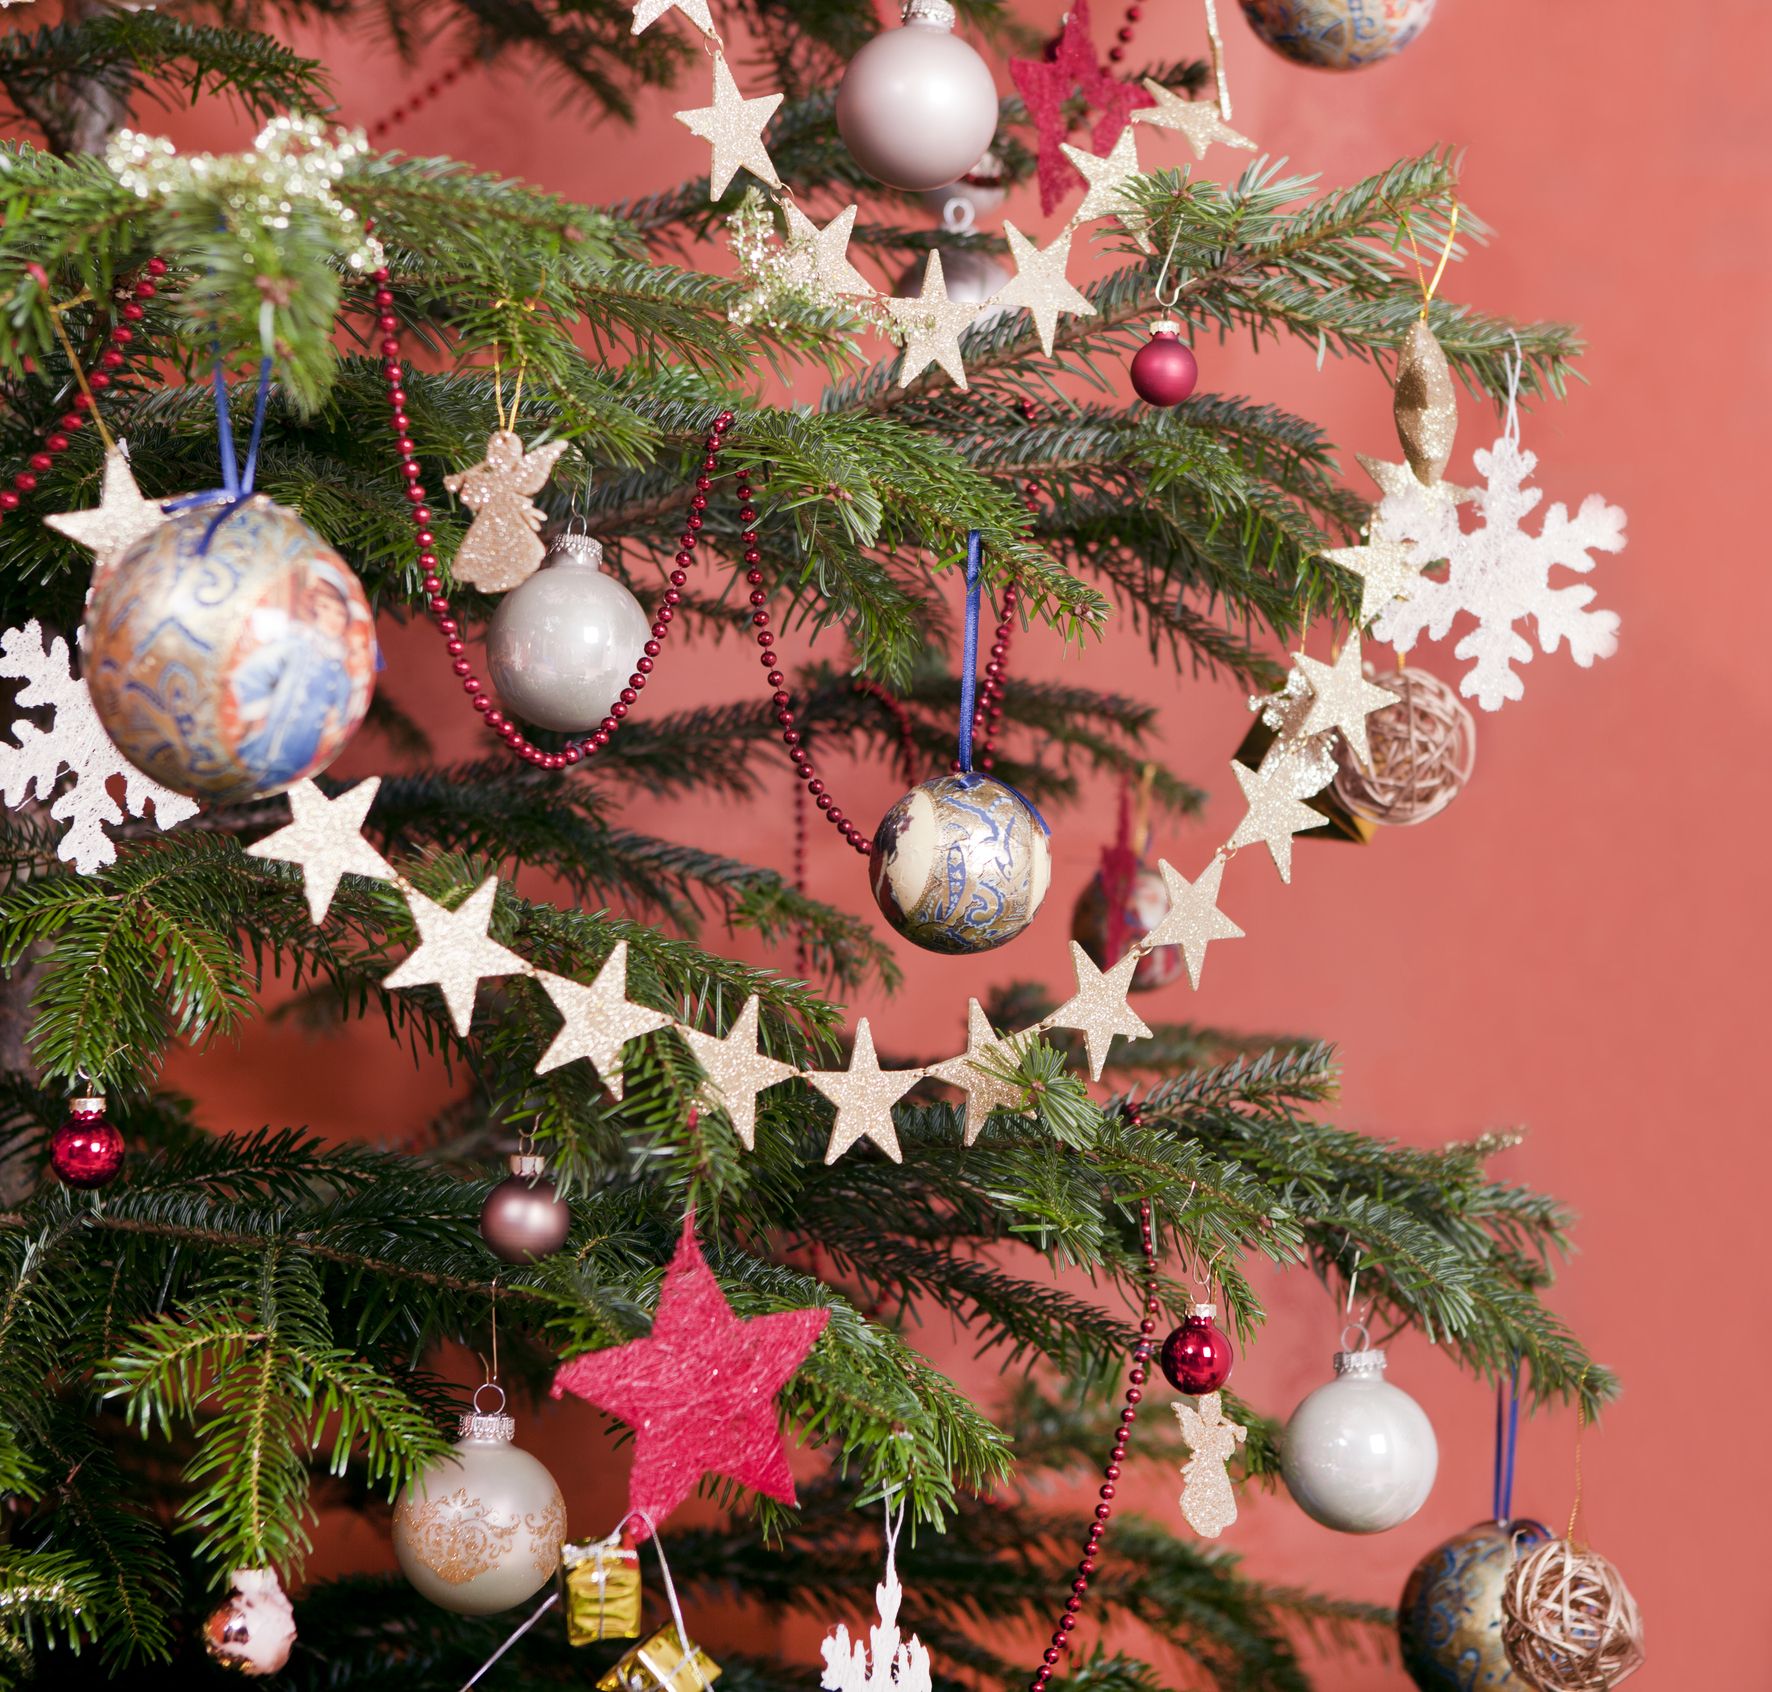 where to buy christmas trees in kl - Buy Christmas Tree